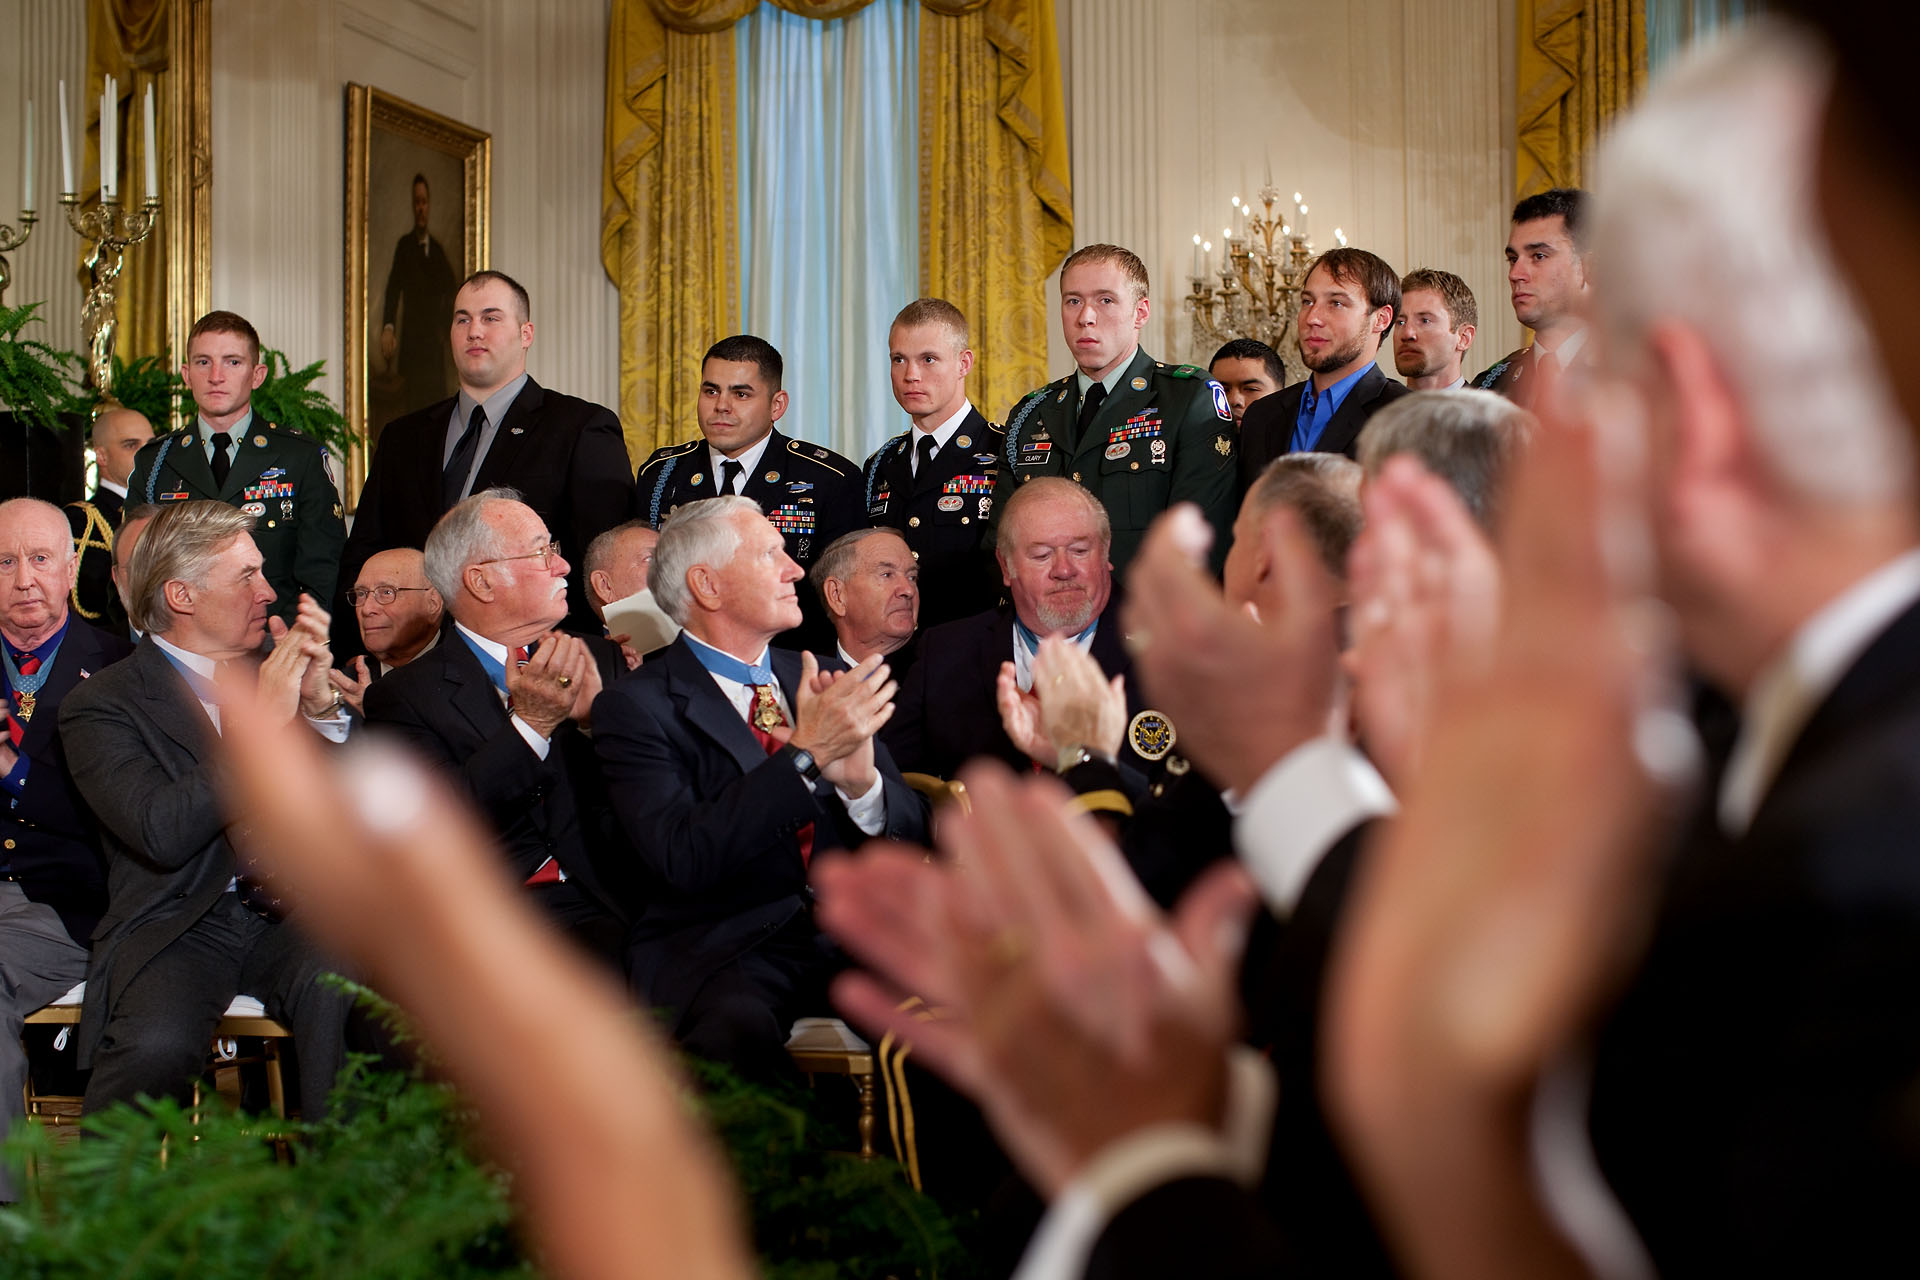 Applause for Members of Army Staff Sgt. Salvatore Giunta's Unit